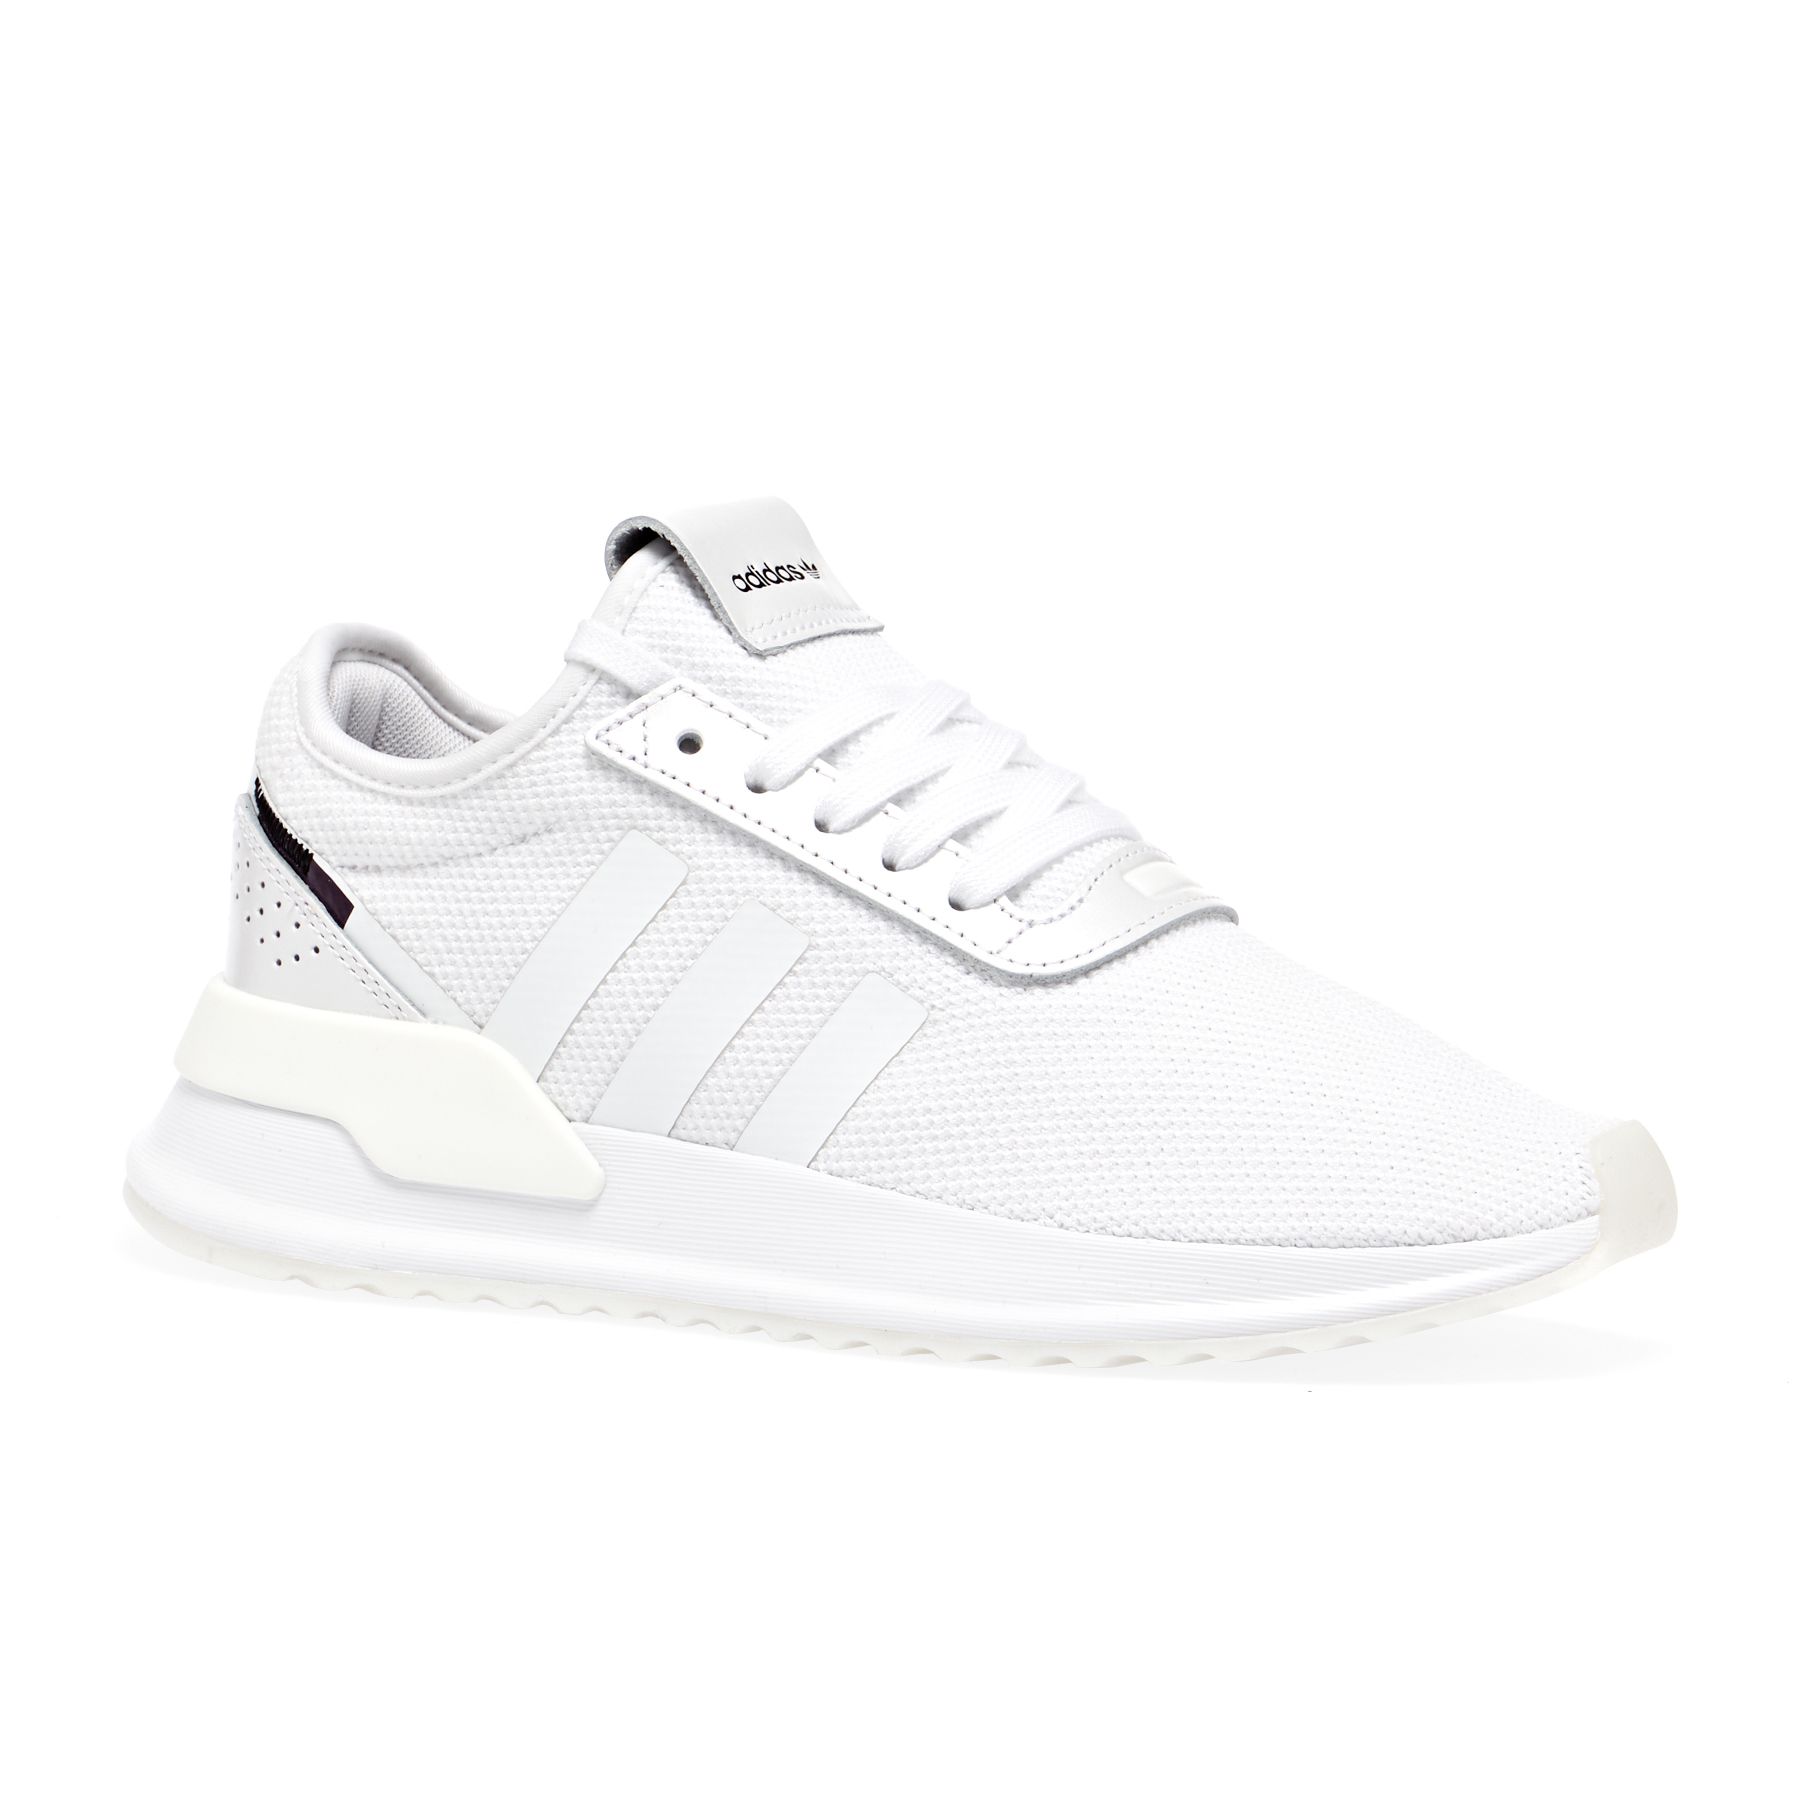 Adidas Originals Shoes | Free Delivery* on All Orders from